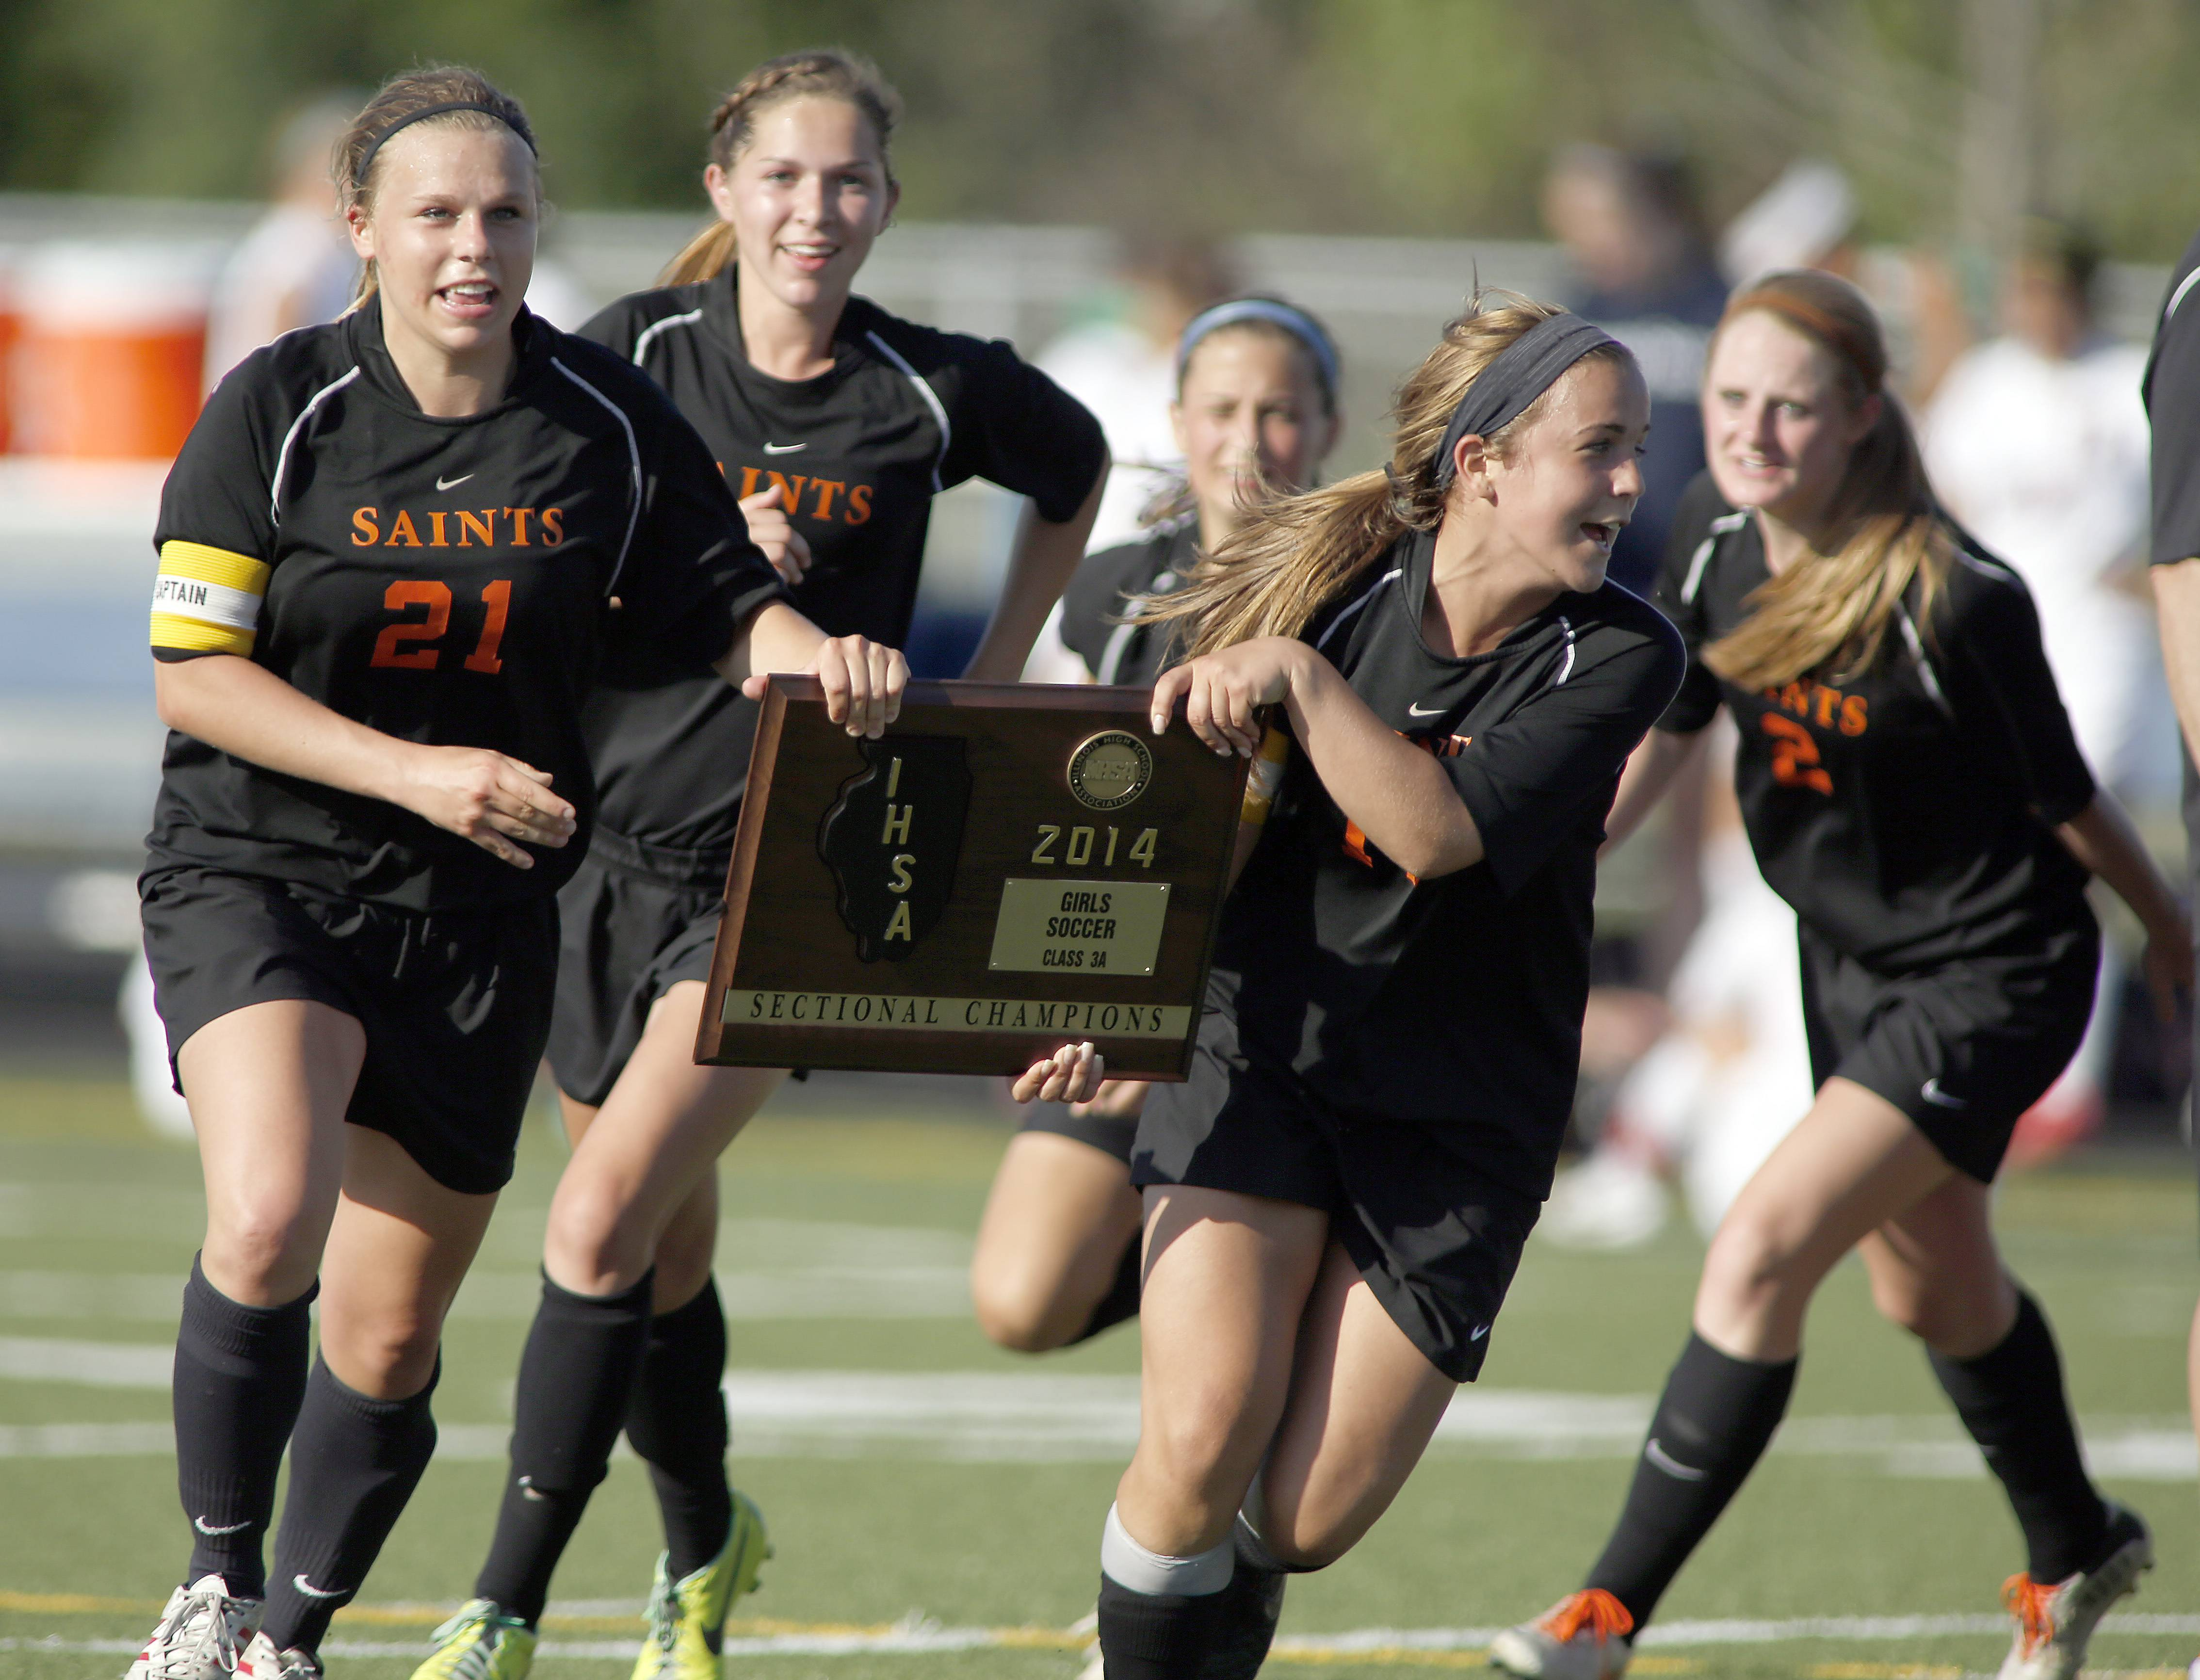 St. Charles East players rush to the sidelines with their plaque after beating Conant during girls soccer sectional championships Friday in Hoffman Estates.